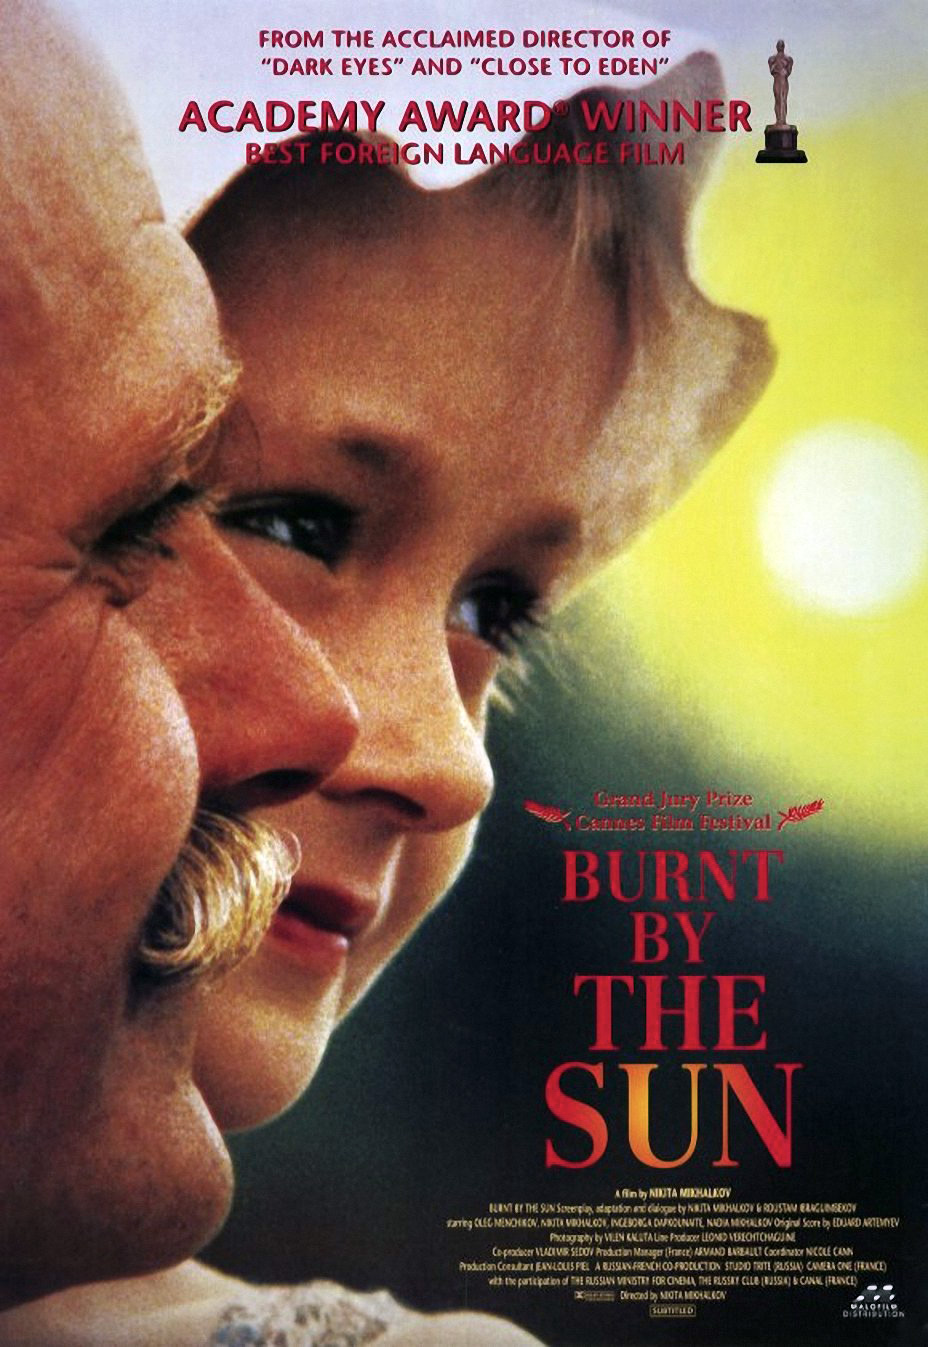 Burnt By The Sun (1994) - Nikita Mikhalkov